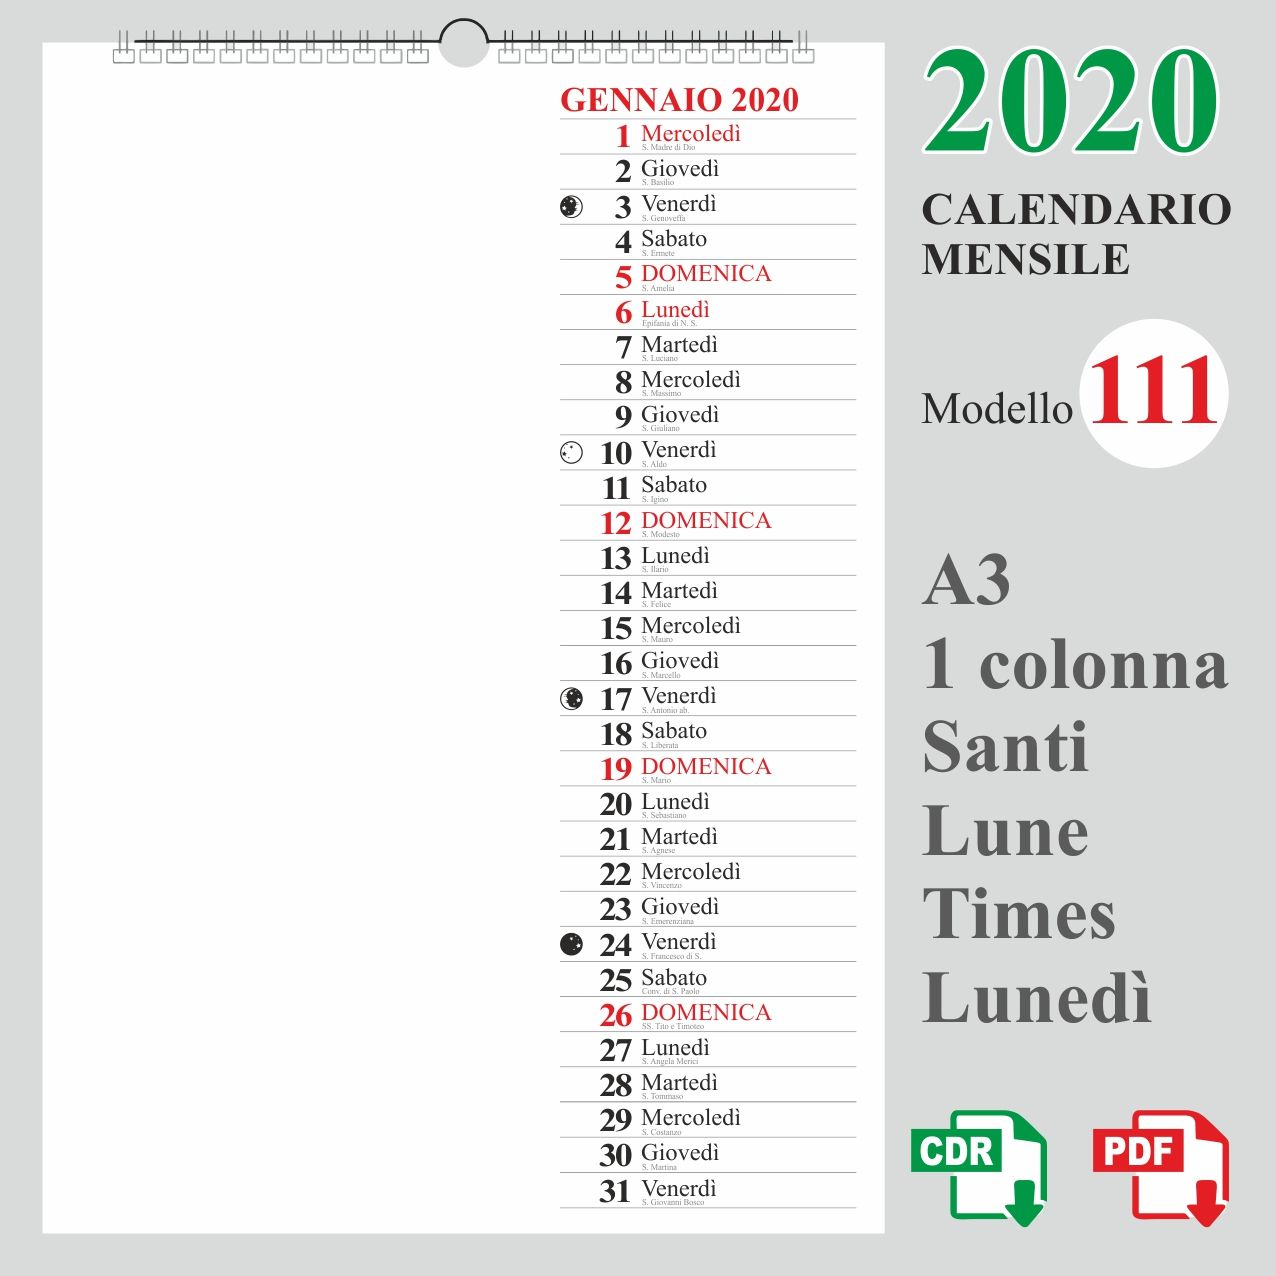 Calendario Annuale 2020 Italiano.Template Calendario 2020 Italiano Calendario 2020